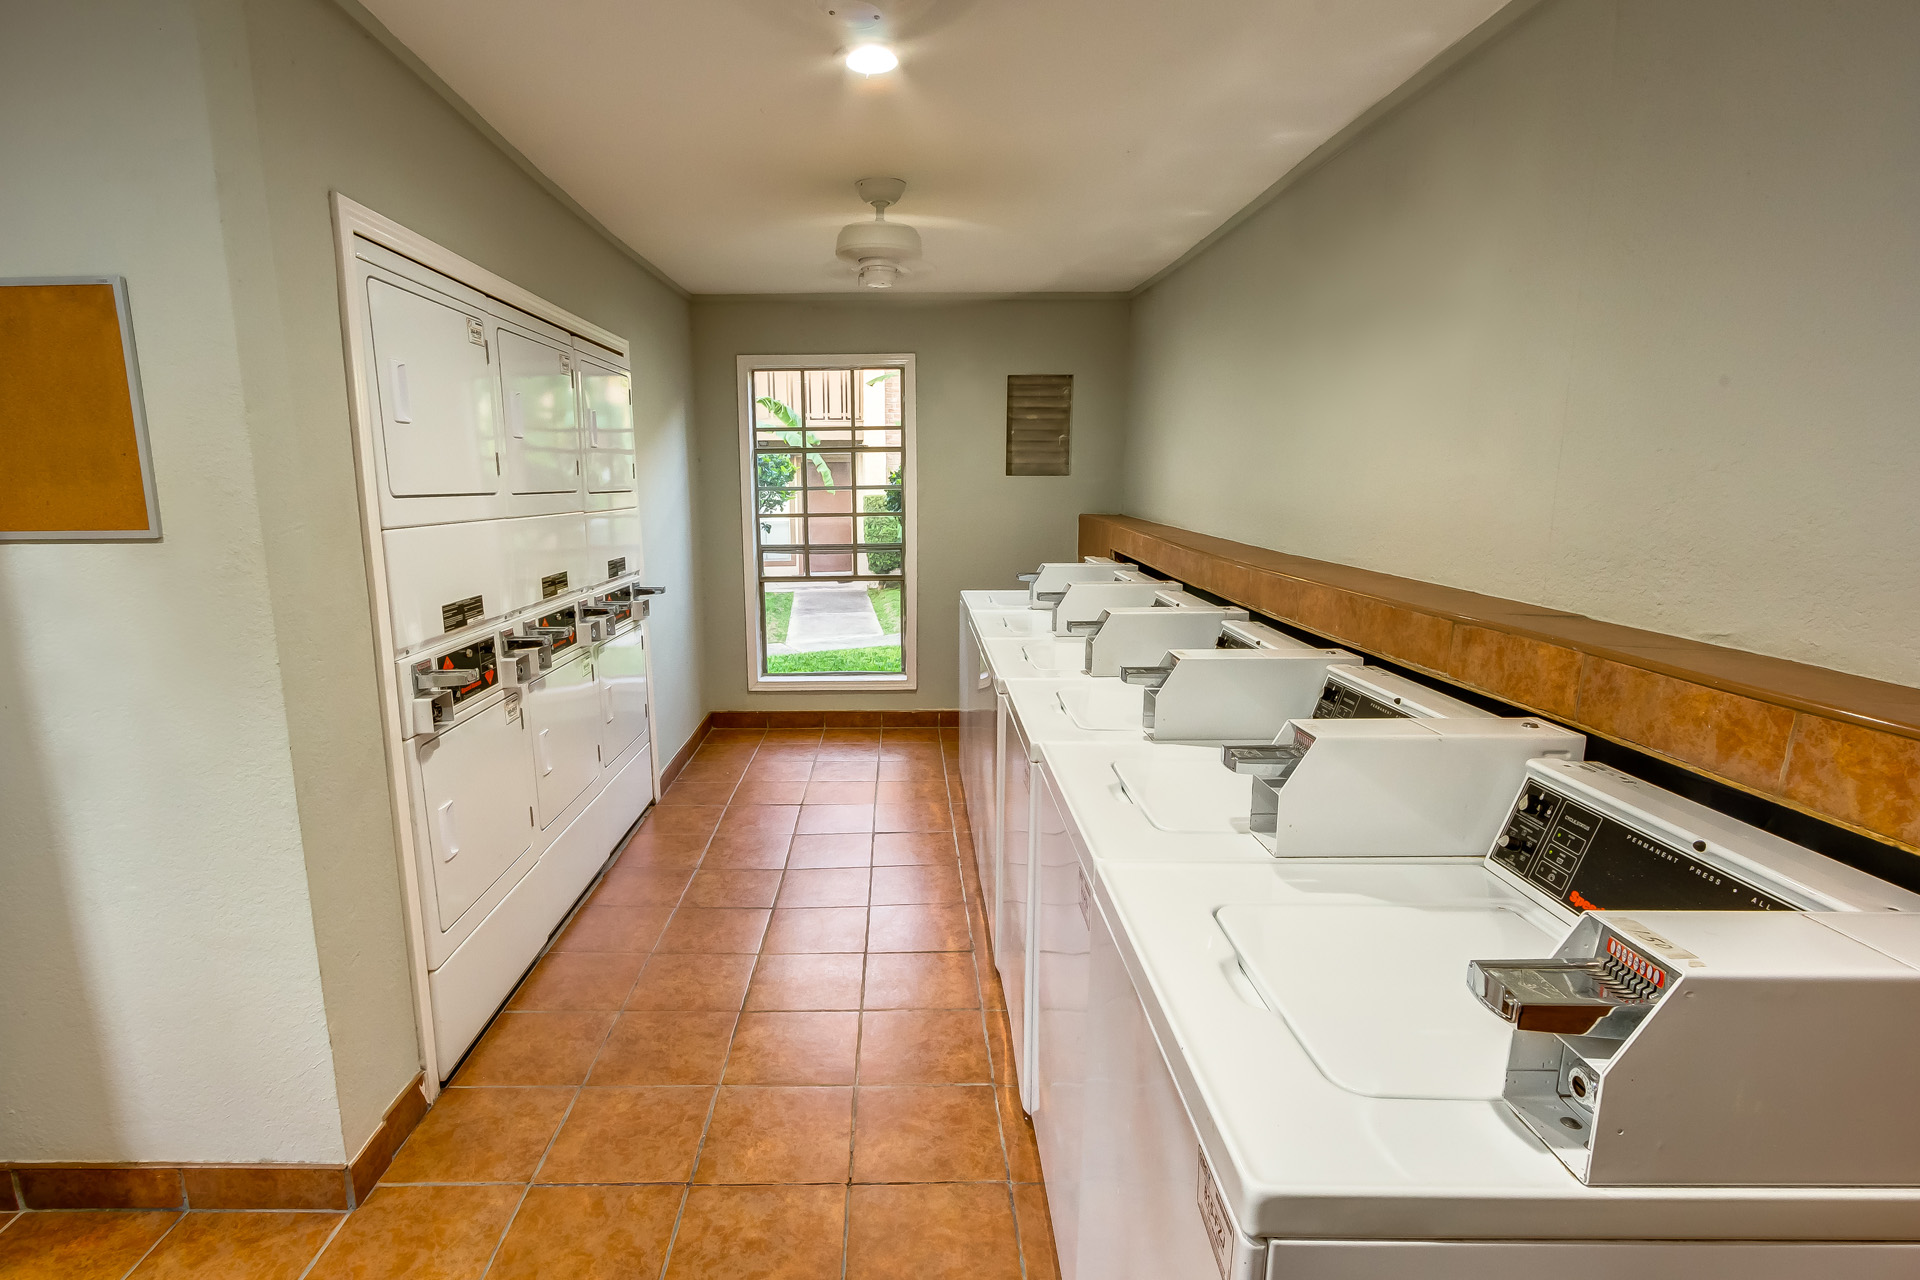 Villa Madrid Laundry Room